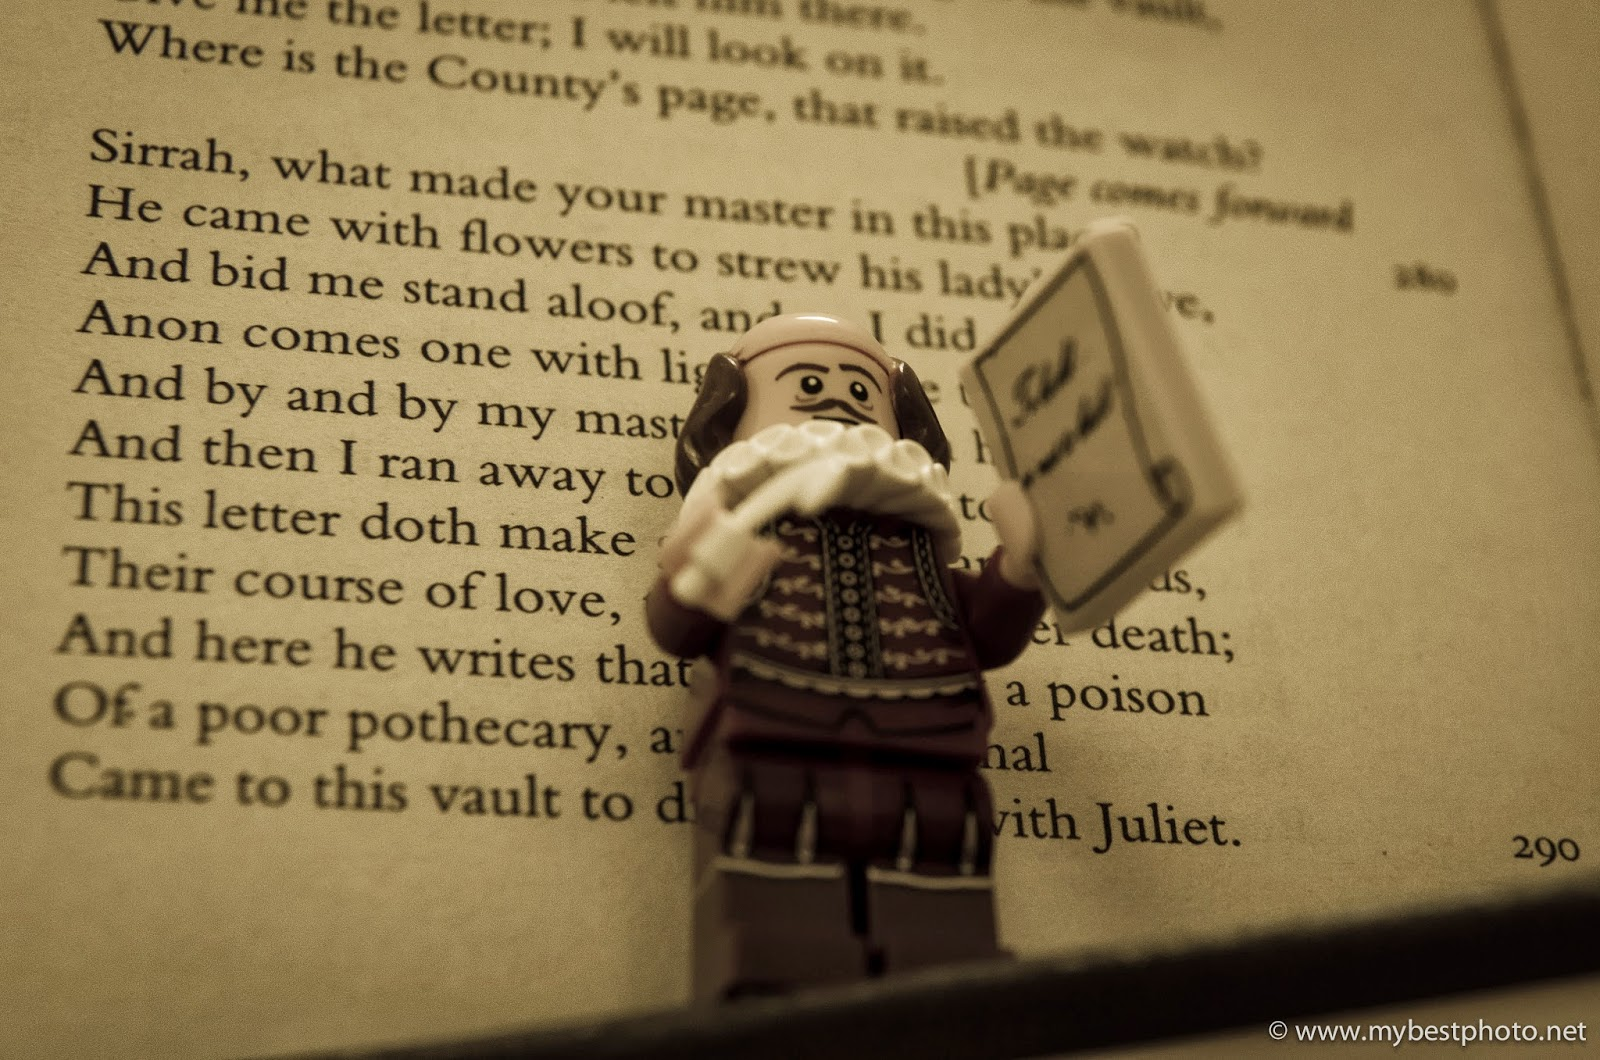 Lego Minifigure Series 12 Lego Movie Wallpaper William Shakespeare